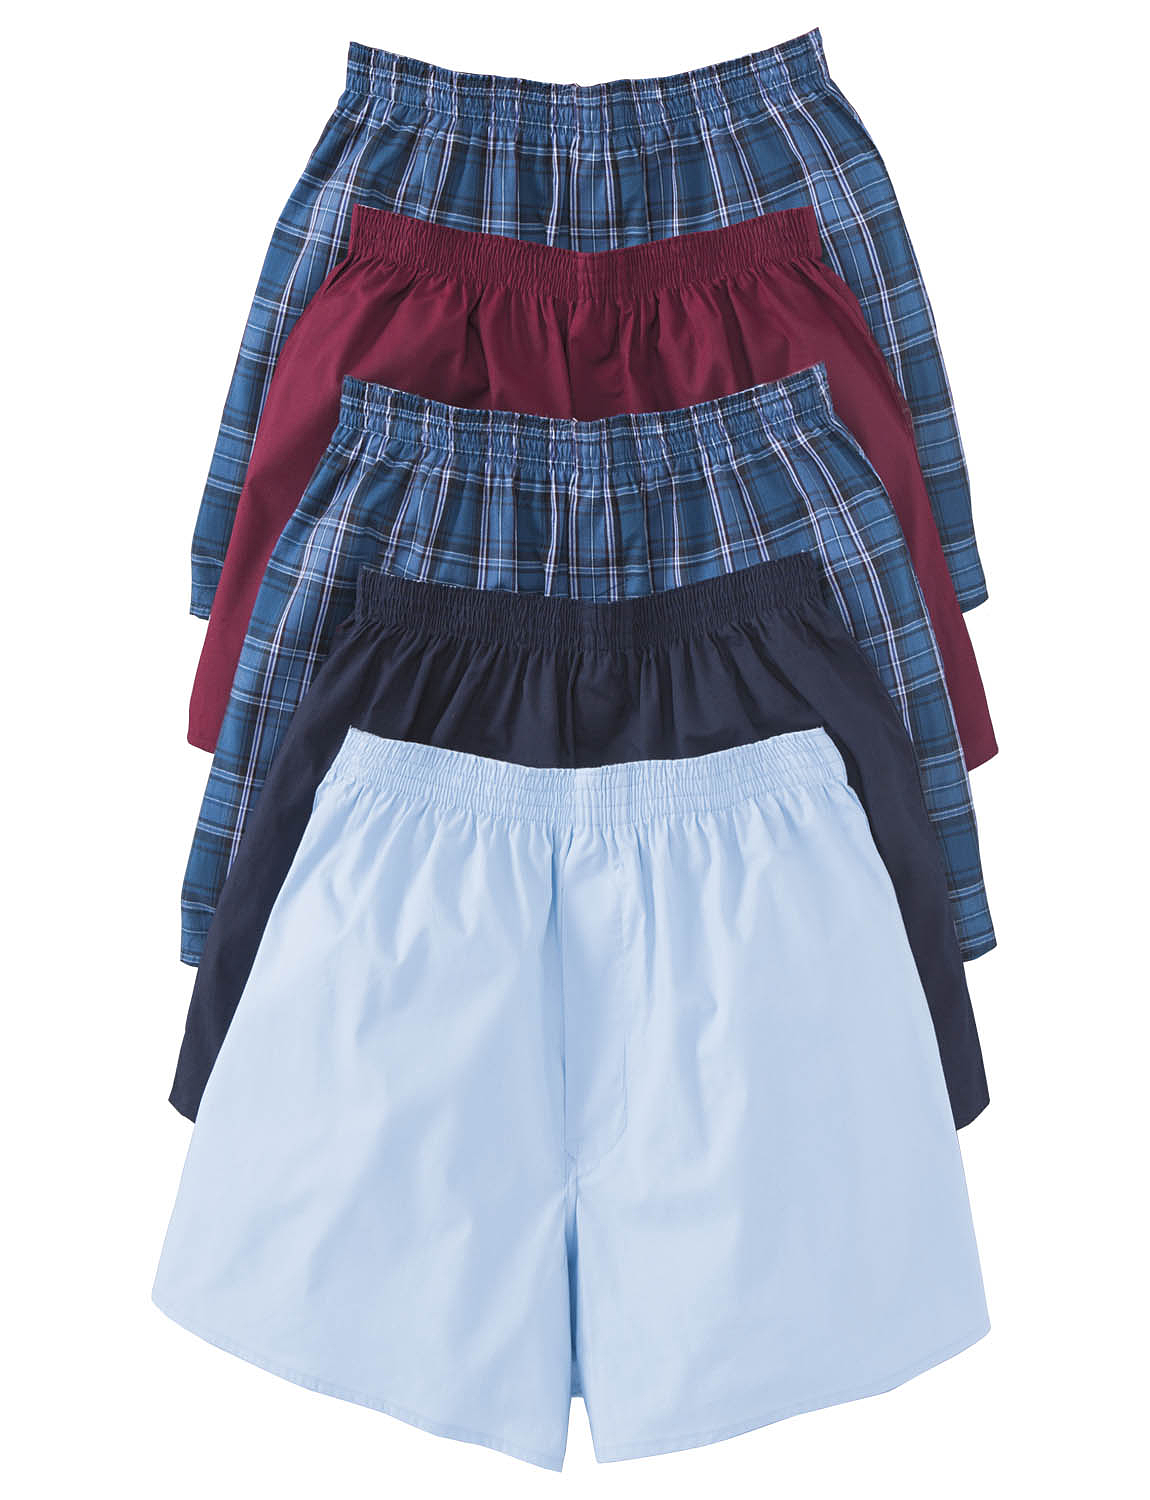 Pack Of 5 Mixed Woven Boxer Shorts - Assorted